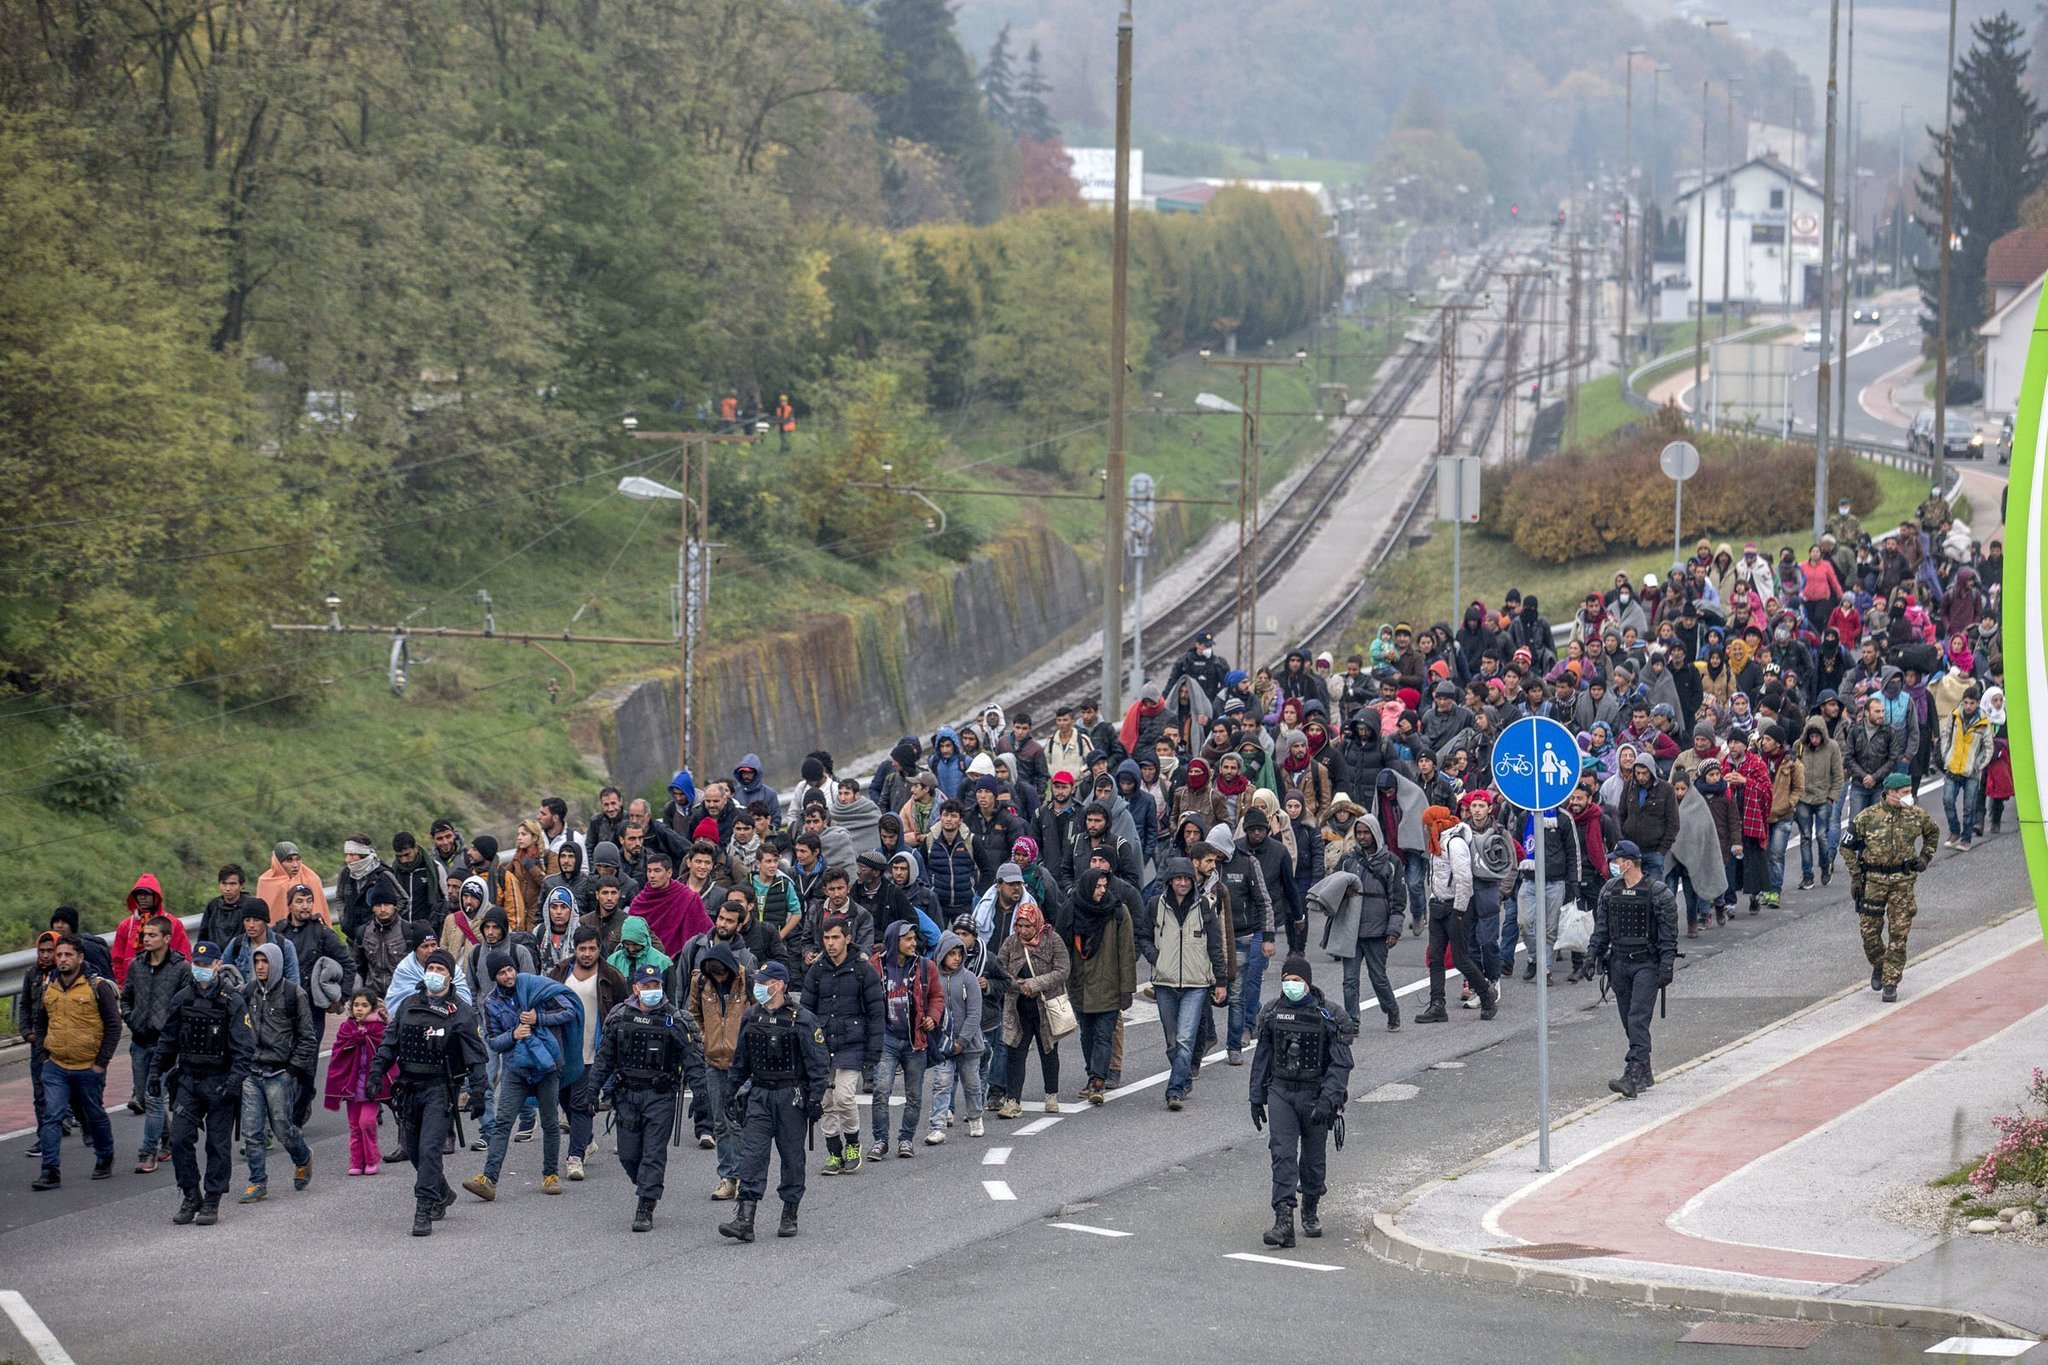 EU aims to send up to 120,000 migrants to Hungary?